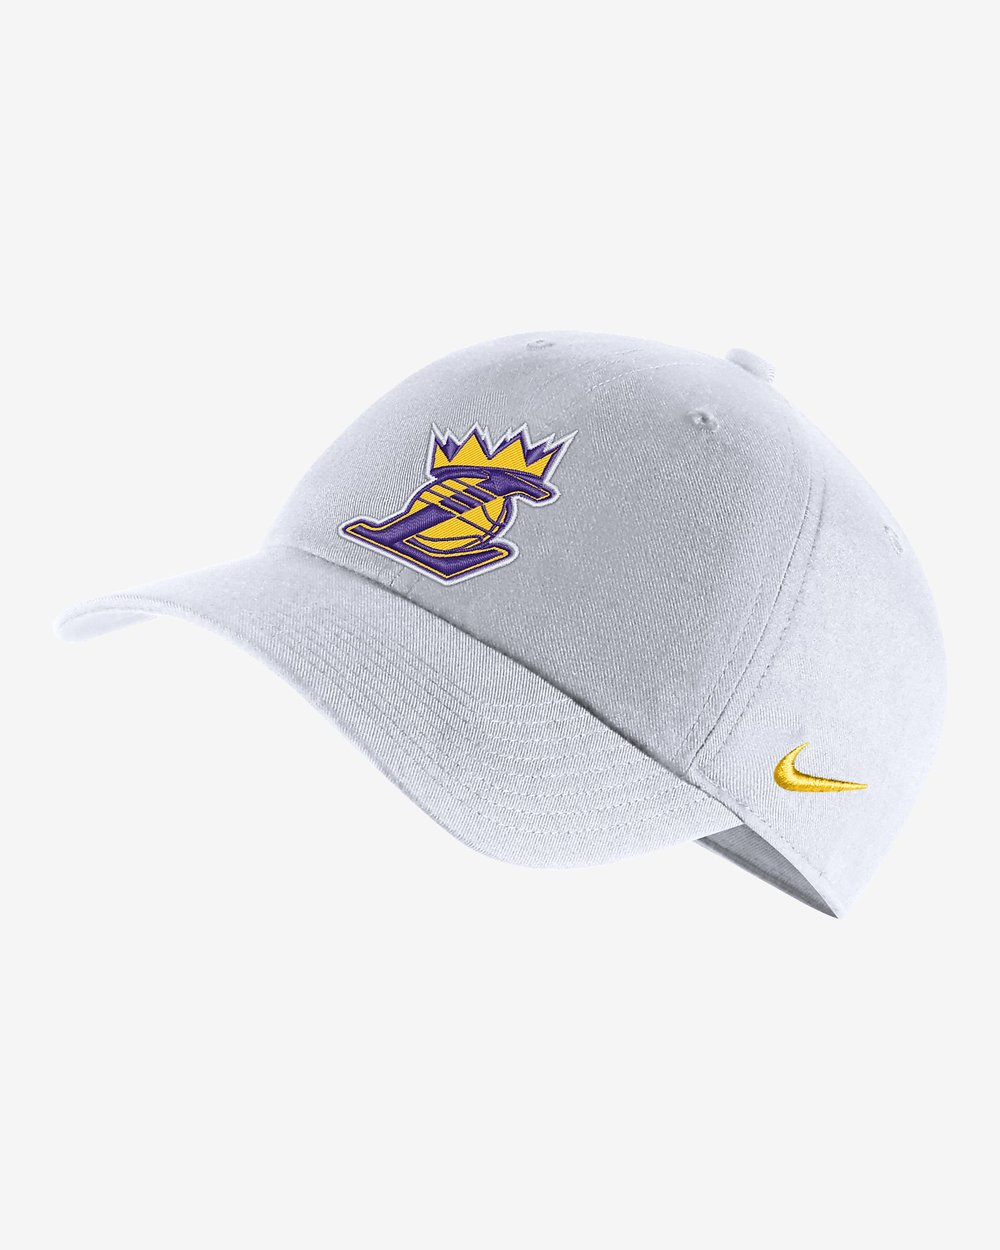 reputable site fb580 eb61a low price nike charlotte hornets jordan aerobill classic99 adjustable nba  hat rapid teal pine green d05ab c9c1f  australia los angeles lakers  heritage86 nba ...